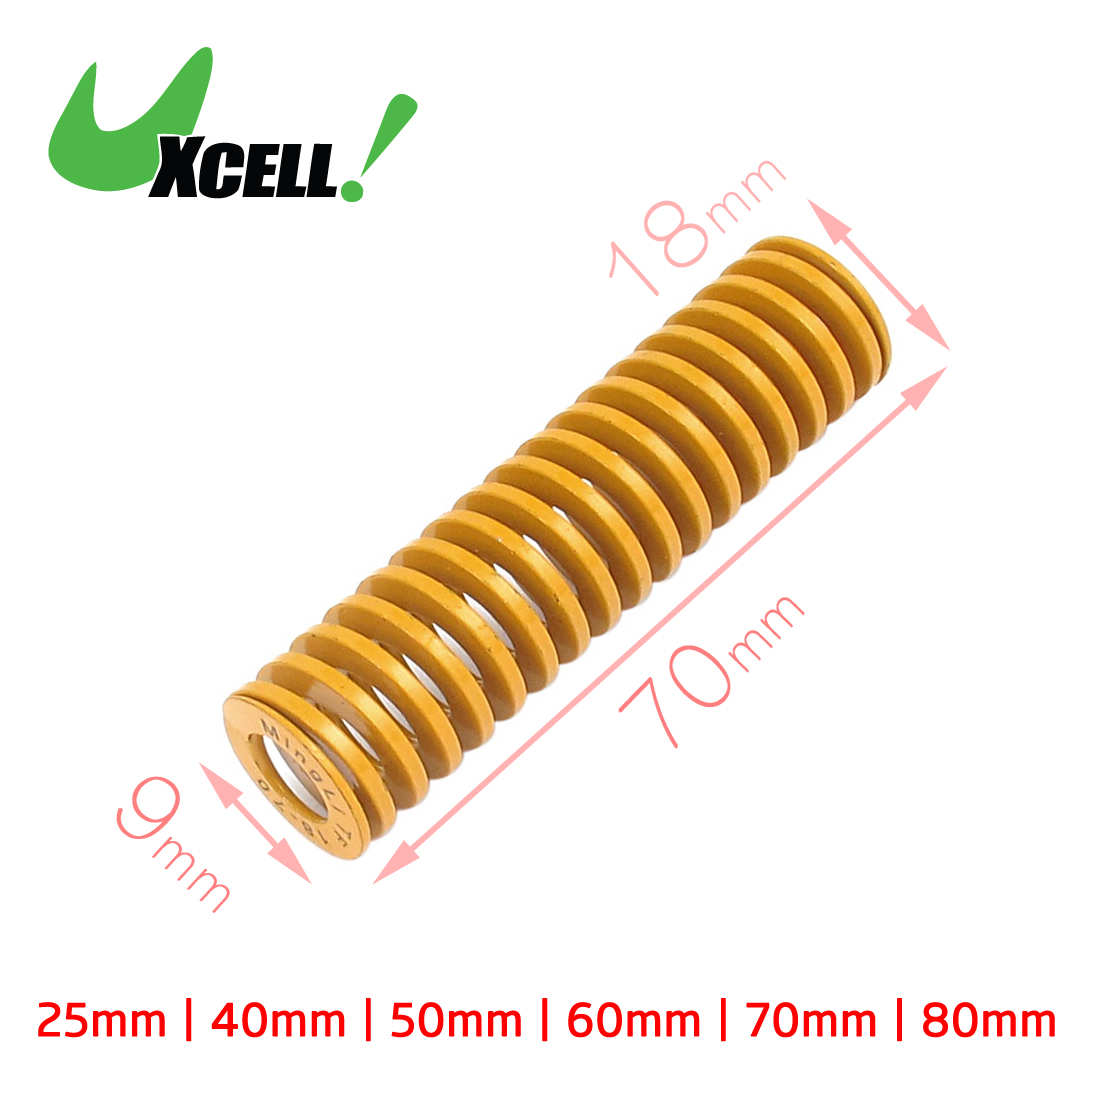 Uxcell Od 18Mm Id 9Mm  Chromium Alloy Steel Mould Die Spring Yellow Long 25mm | 40mm 50mm 60mm 70mm 80mm 90mm